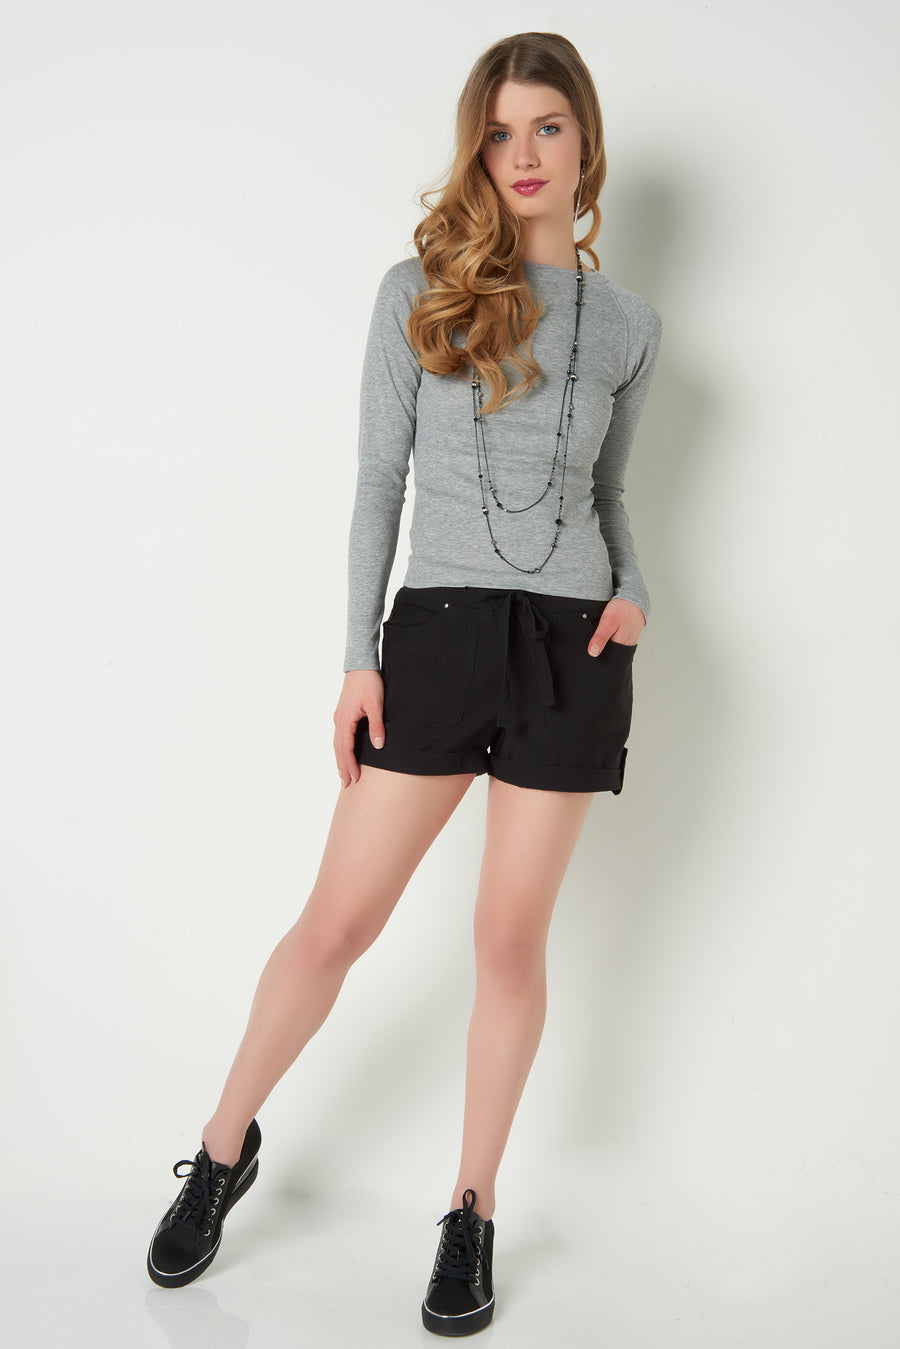 EVERLY - Long sleeve ribbed top (10277LS) (R-A12)